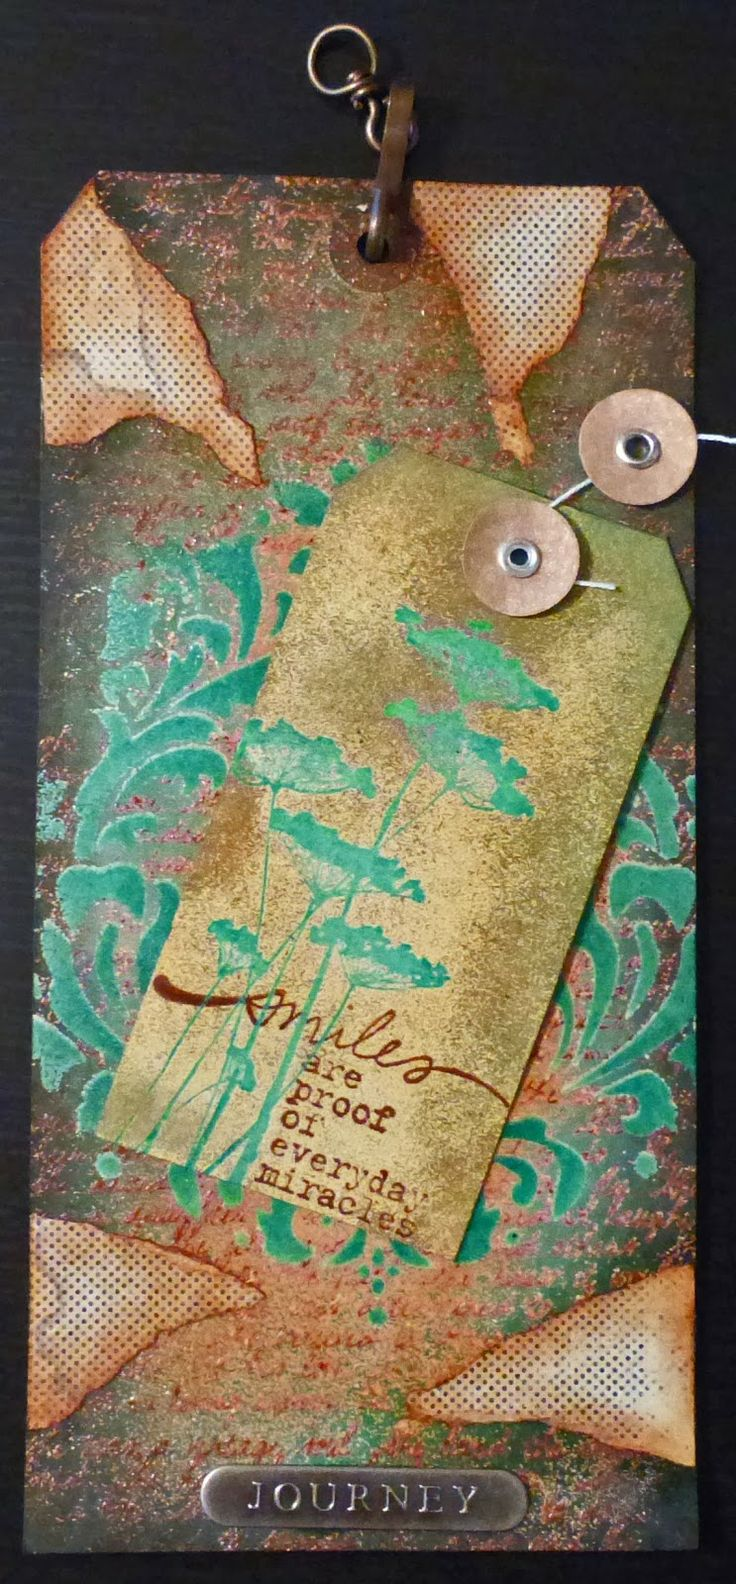 Mixed media paper crafting merry christmas card - 356 Best Cards Amp Tags From The Netherlands Images On